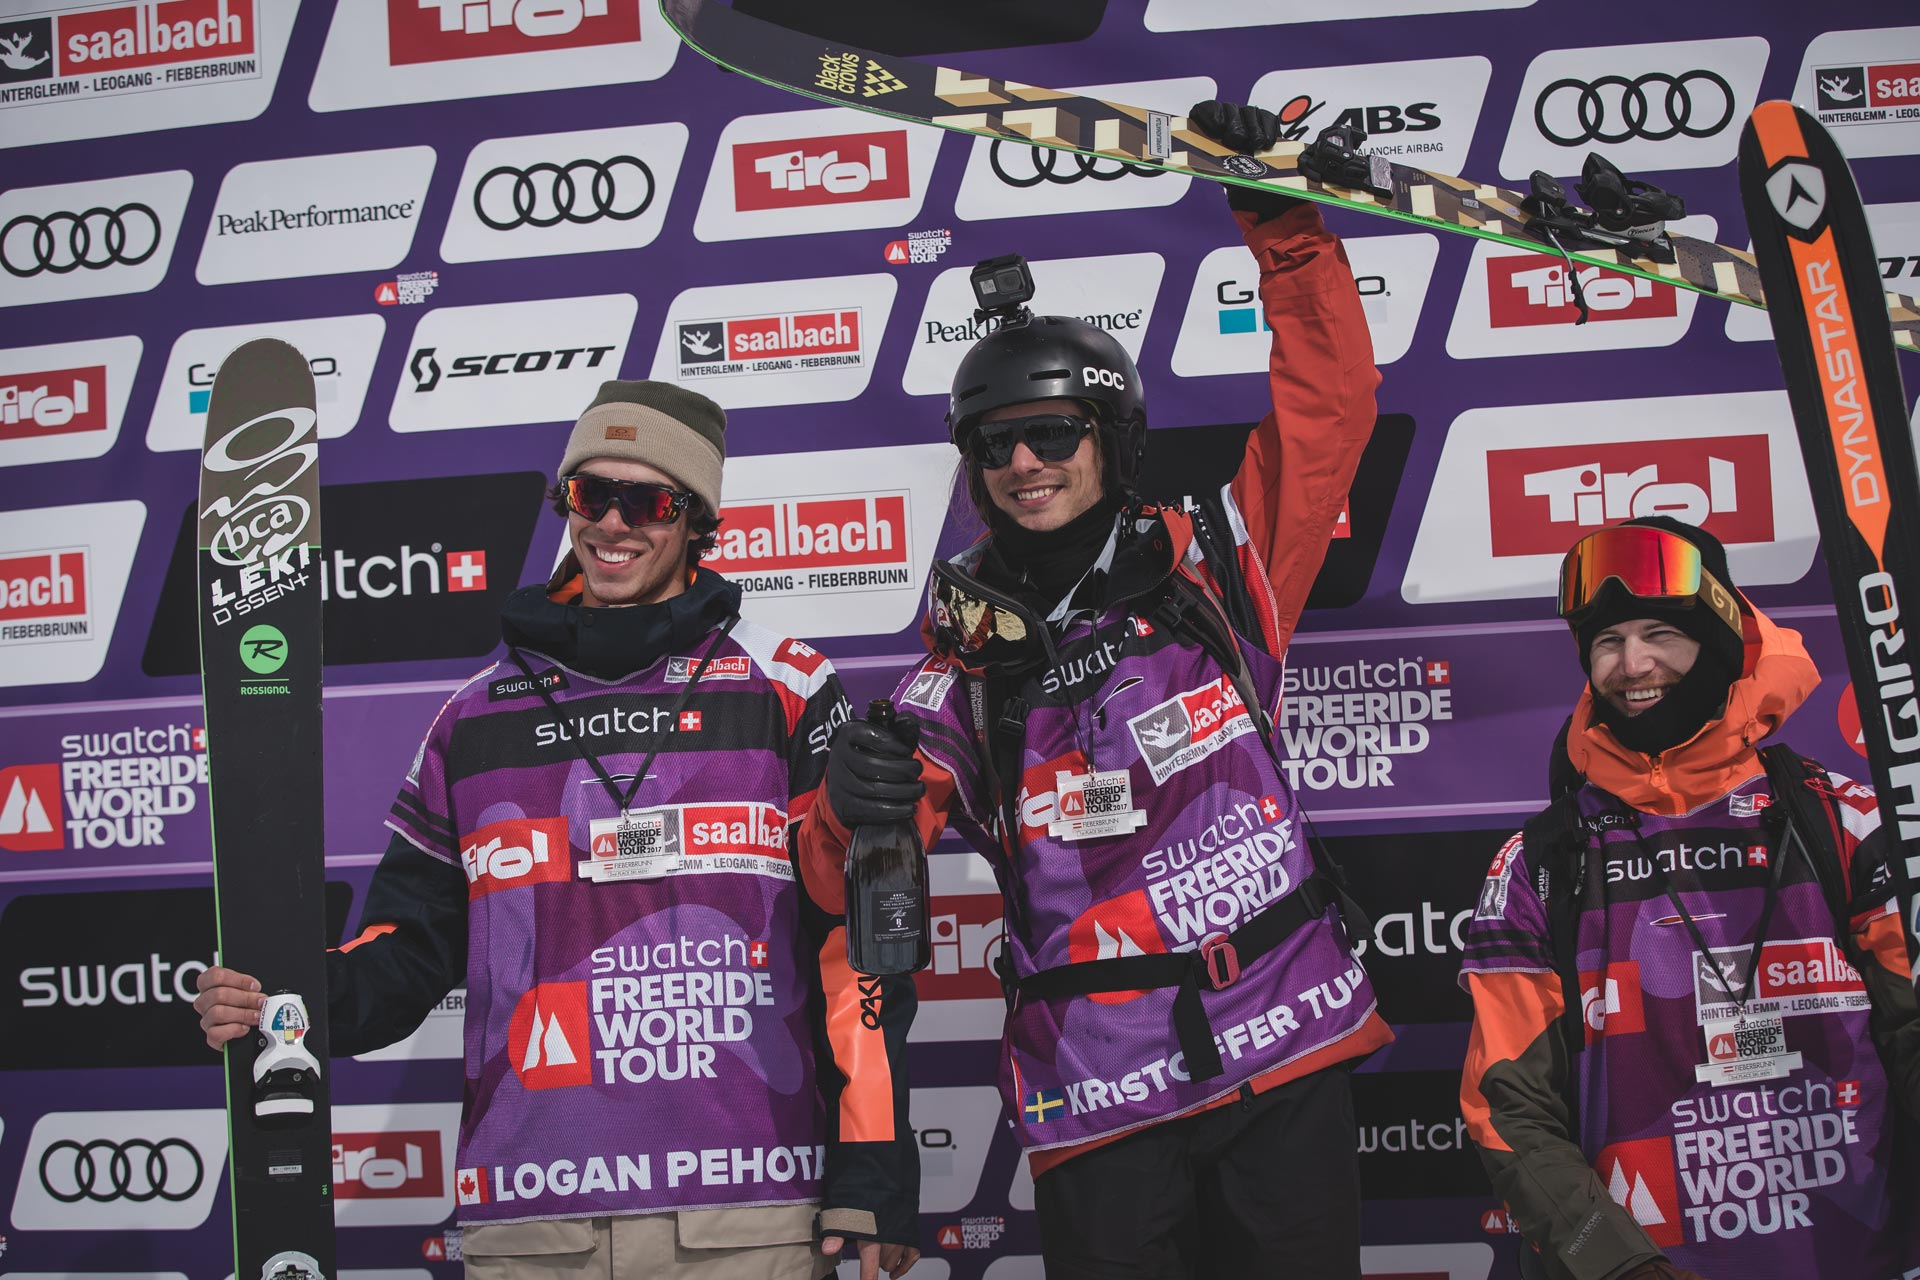 Die Top 3 Männer beim Freeride World Tour Stopp in Fieberbrunn 2017: Logan Pehote, Kristofer Turdell und Reine Barkered - Foto: freeridewordltour.com / Mia Knoll